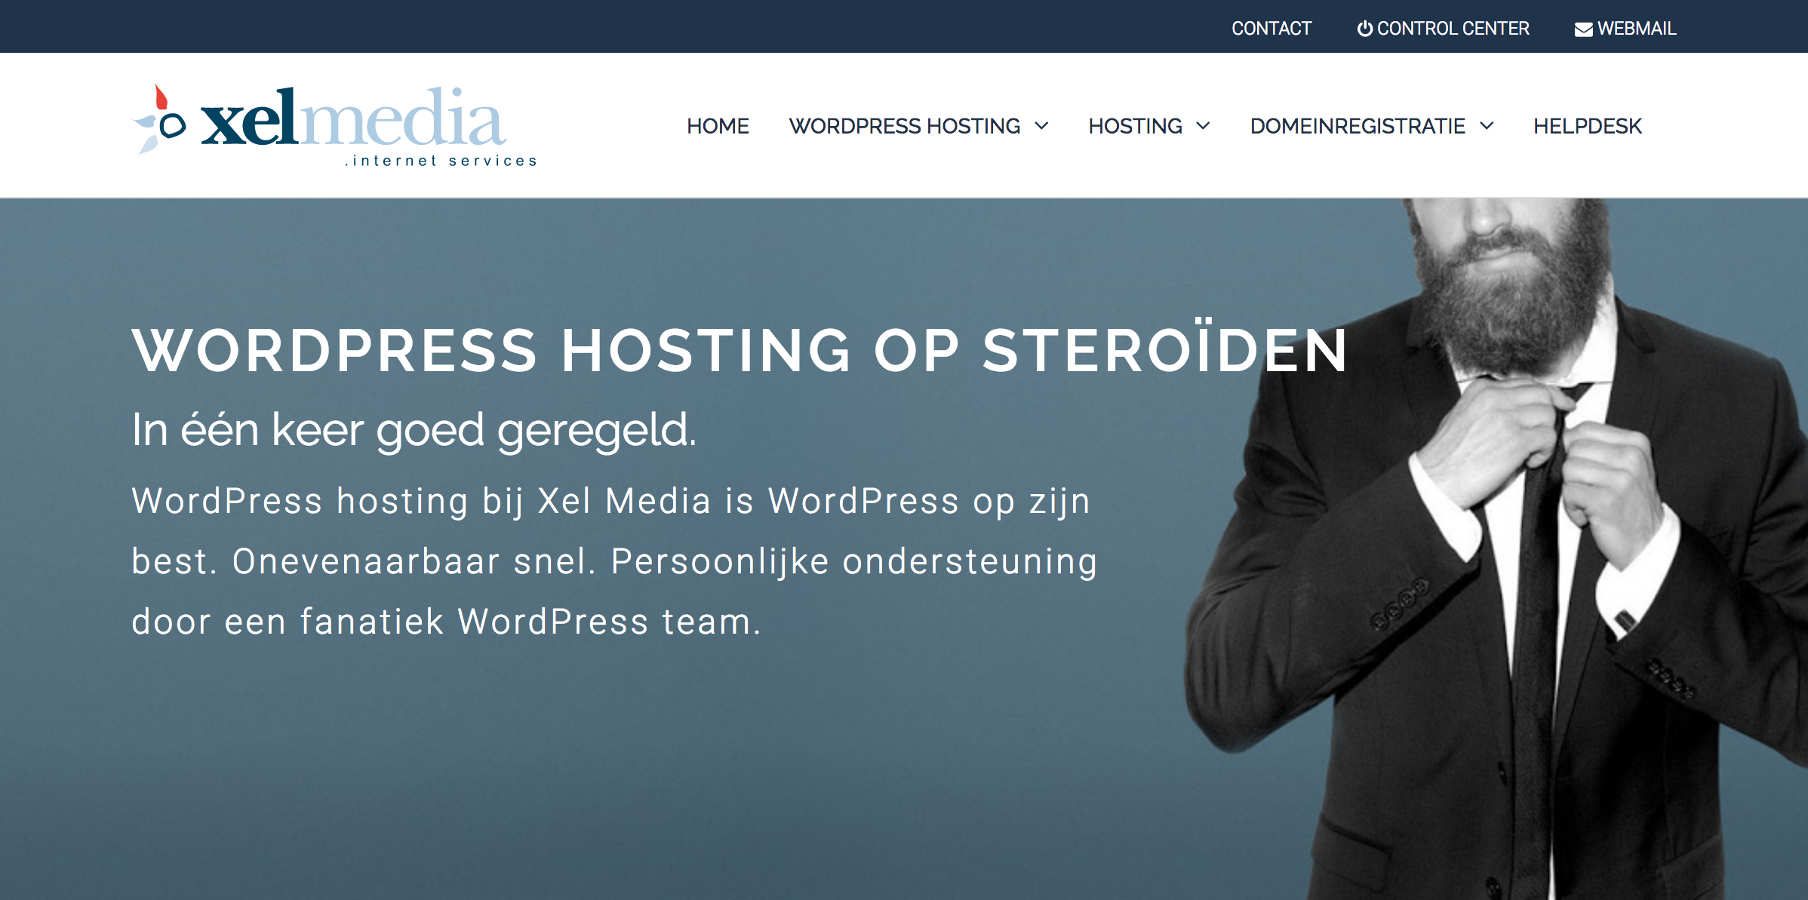 Xel Media WordPress hosting homepage